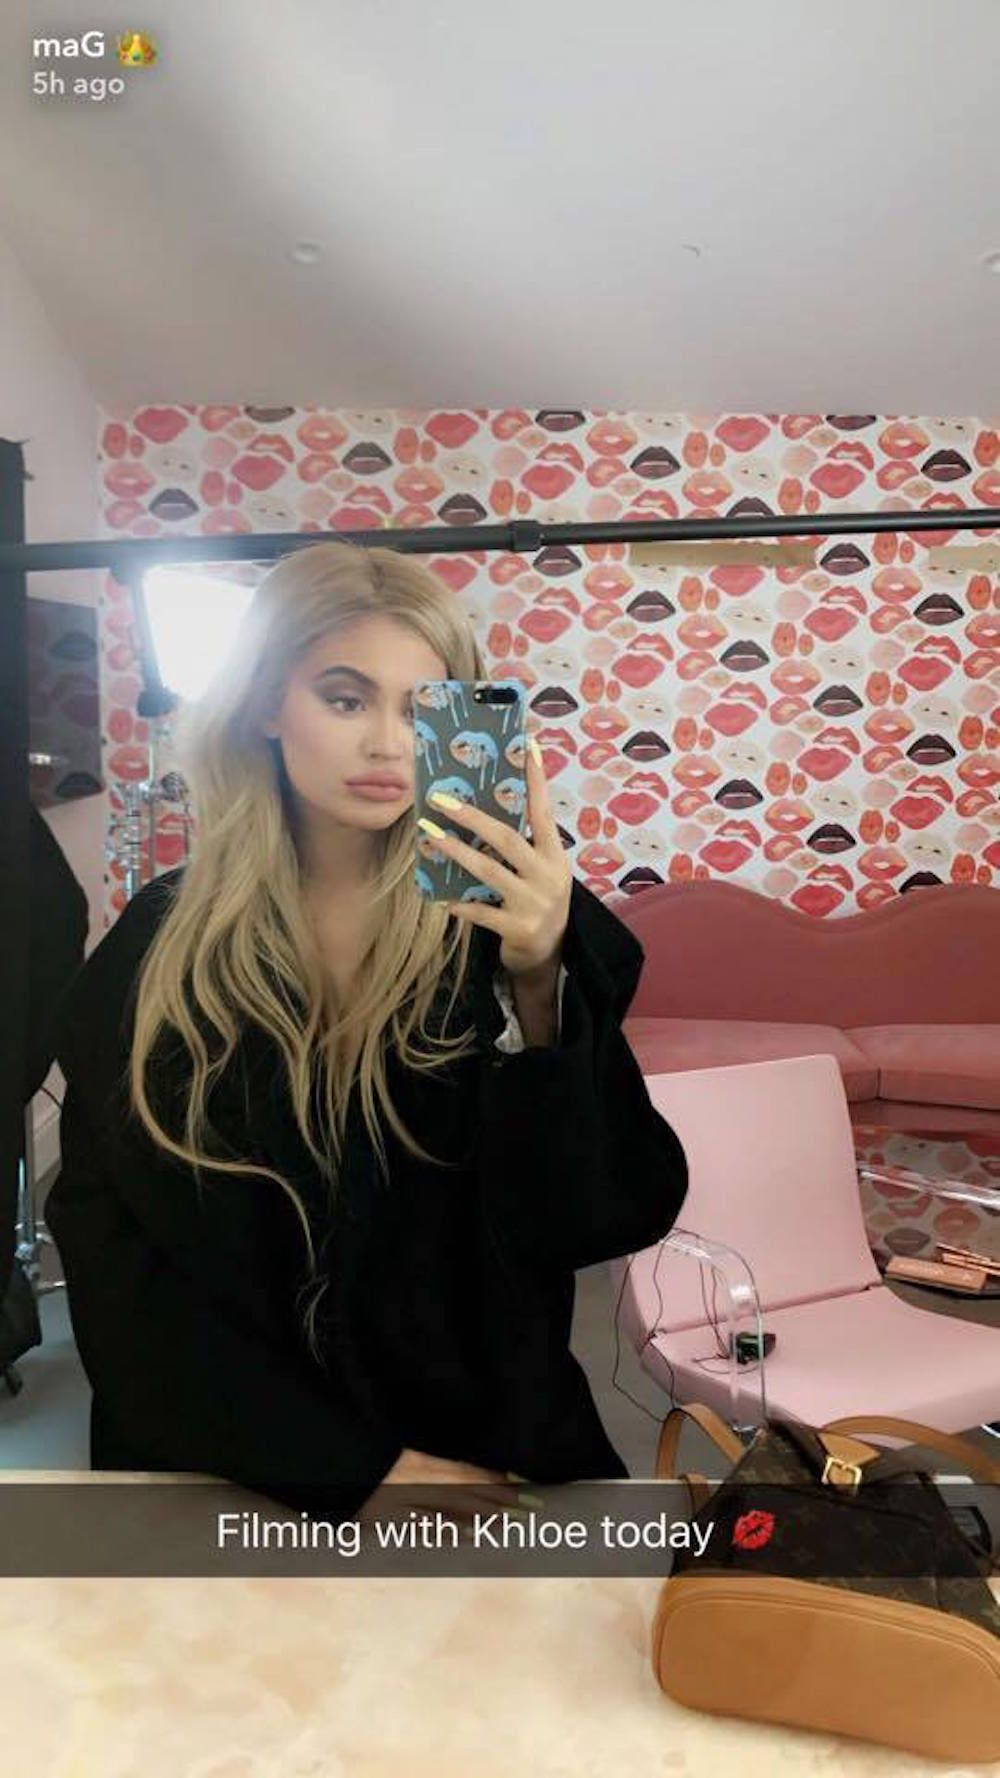 22385200 1481773421858185 1156985632 n 1507642091 Kylie Jenners Baggy Blouse Photo Sparks More Pregnancy Rumors